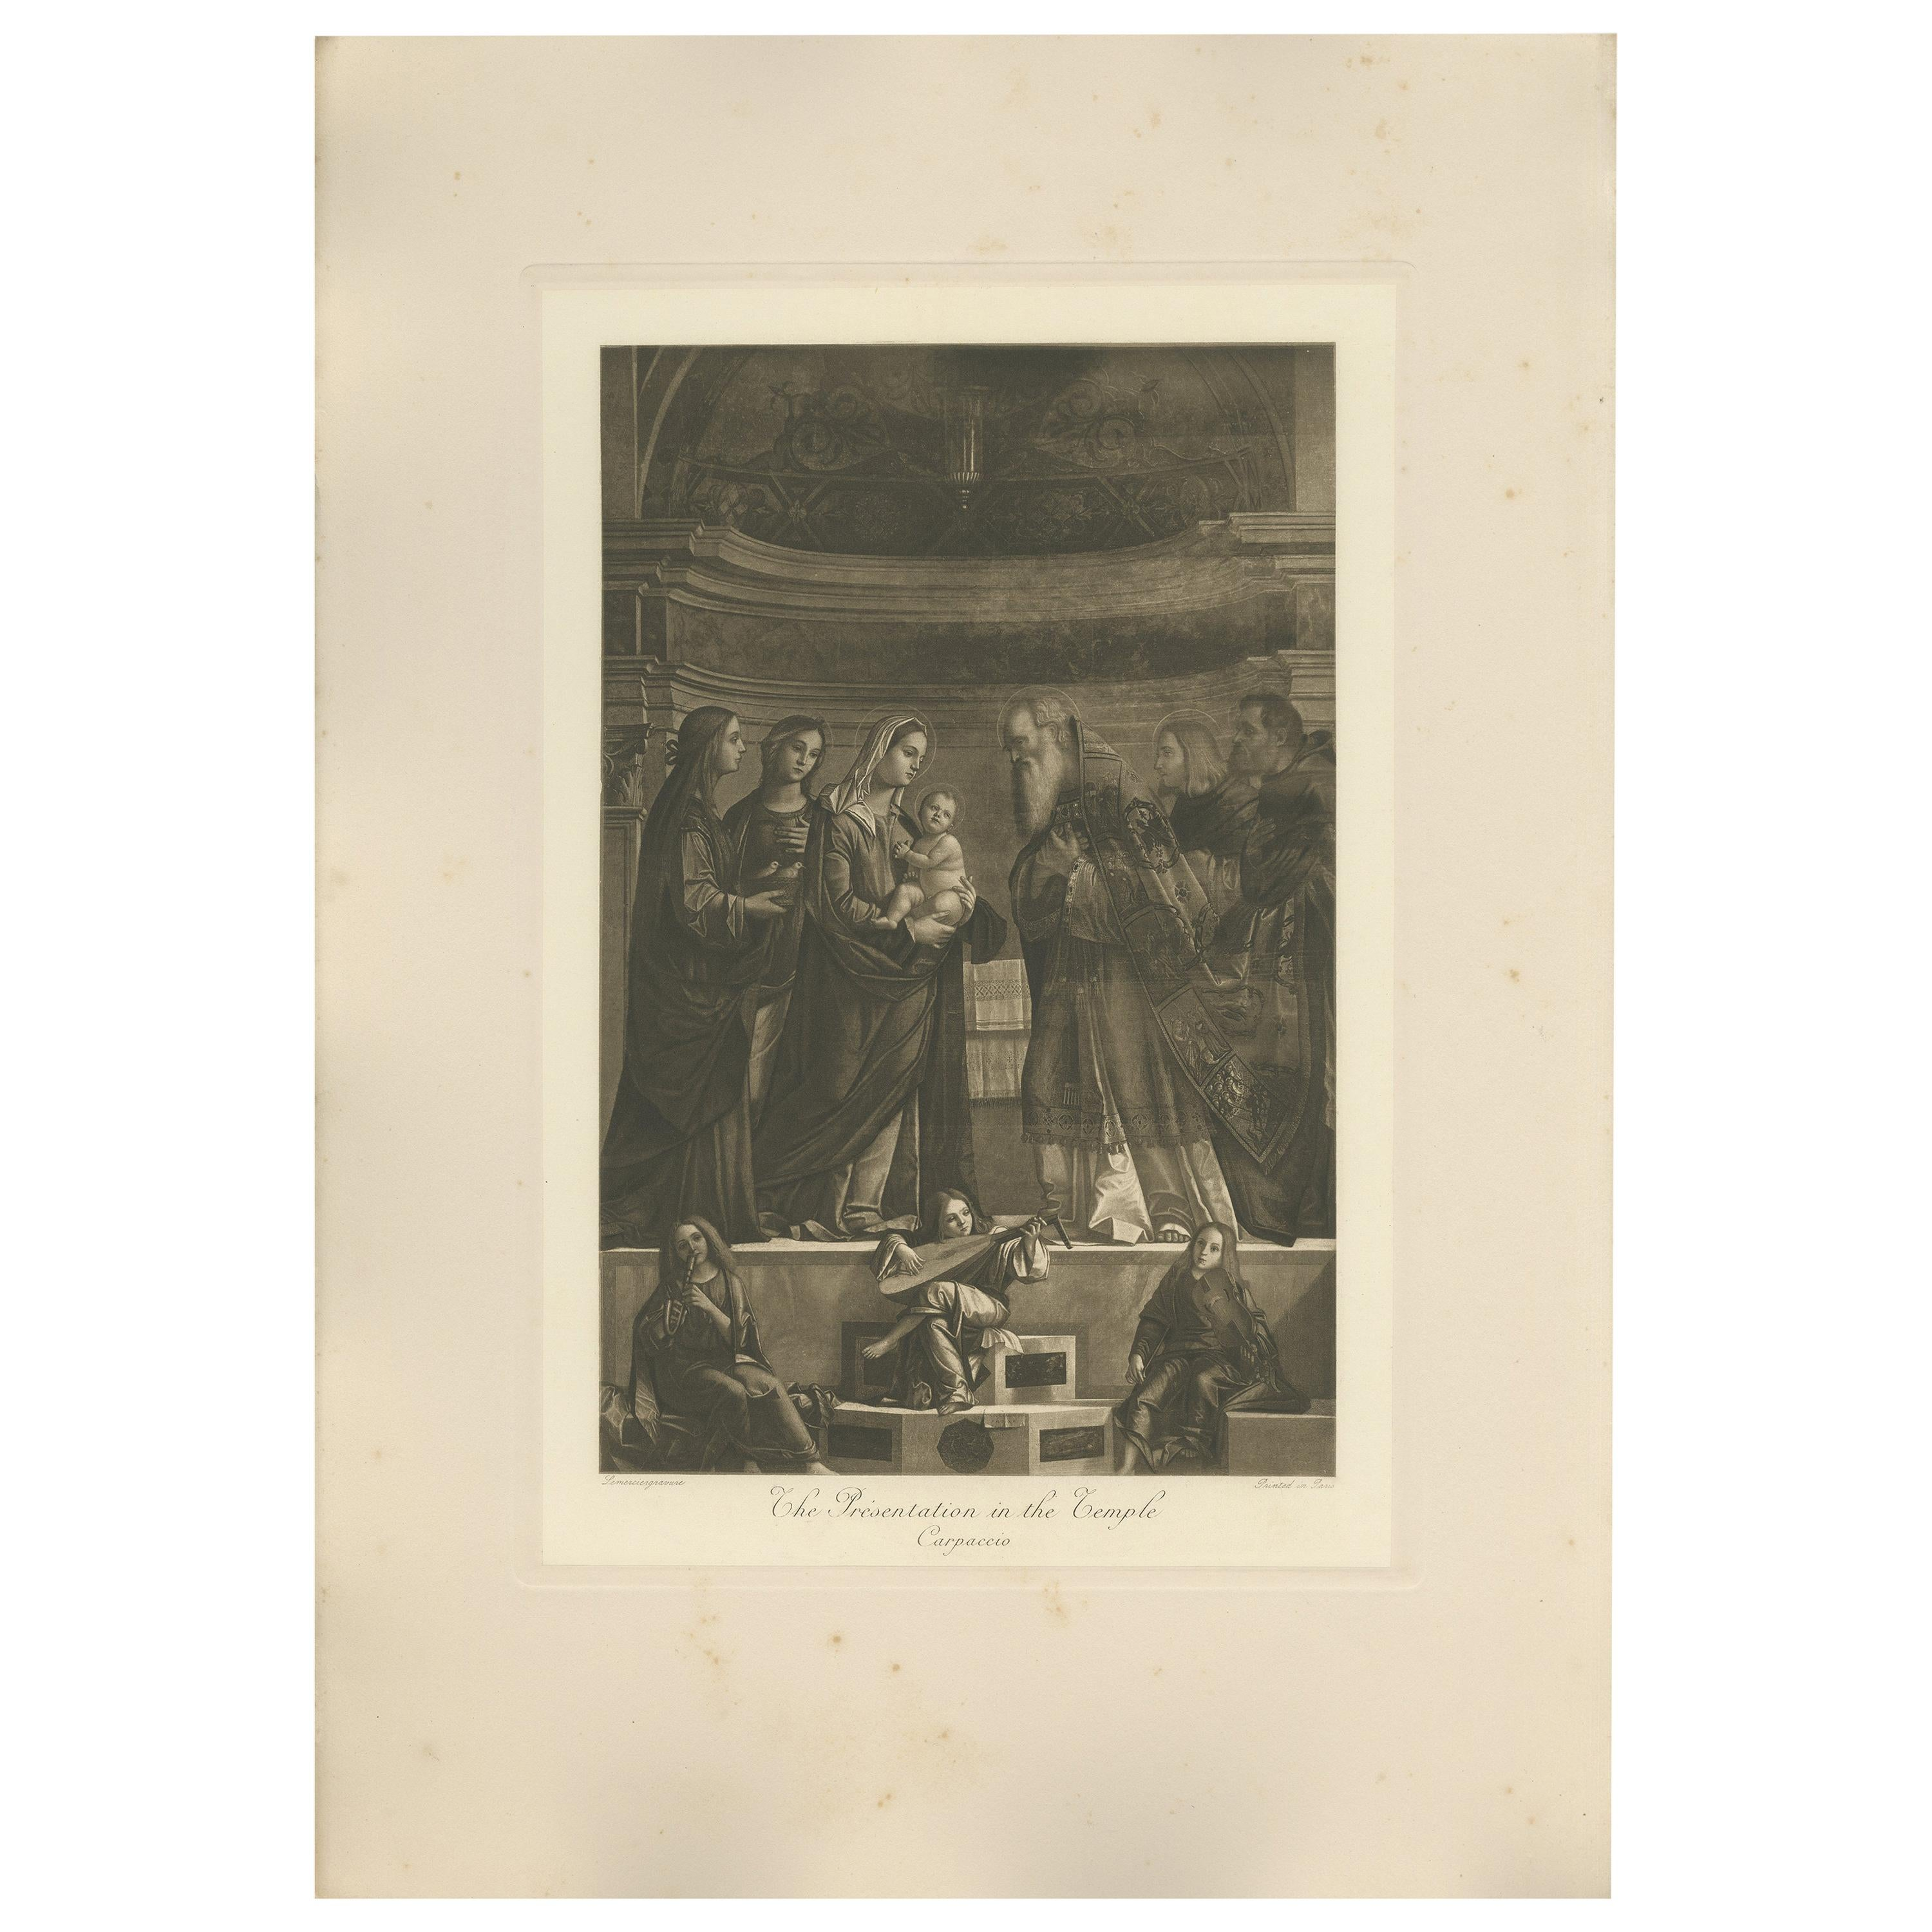 Antique Print 'The Presentation in the Temple' Made After Carpaccio, circa 1890